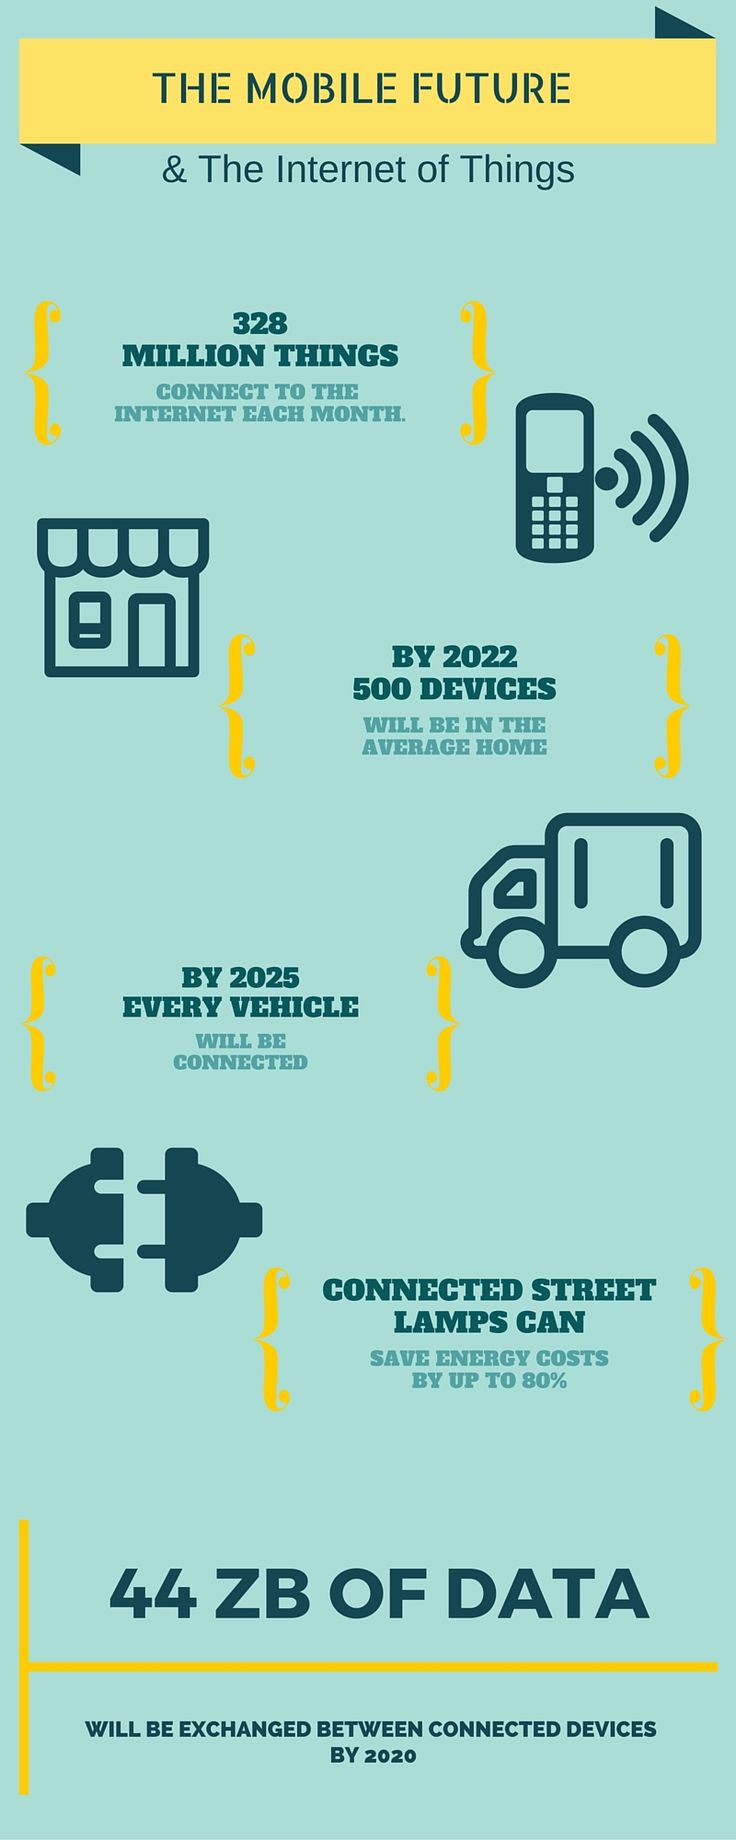 the future of smart cars and smart cities, and the internet of things is  mobile